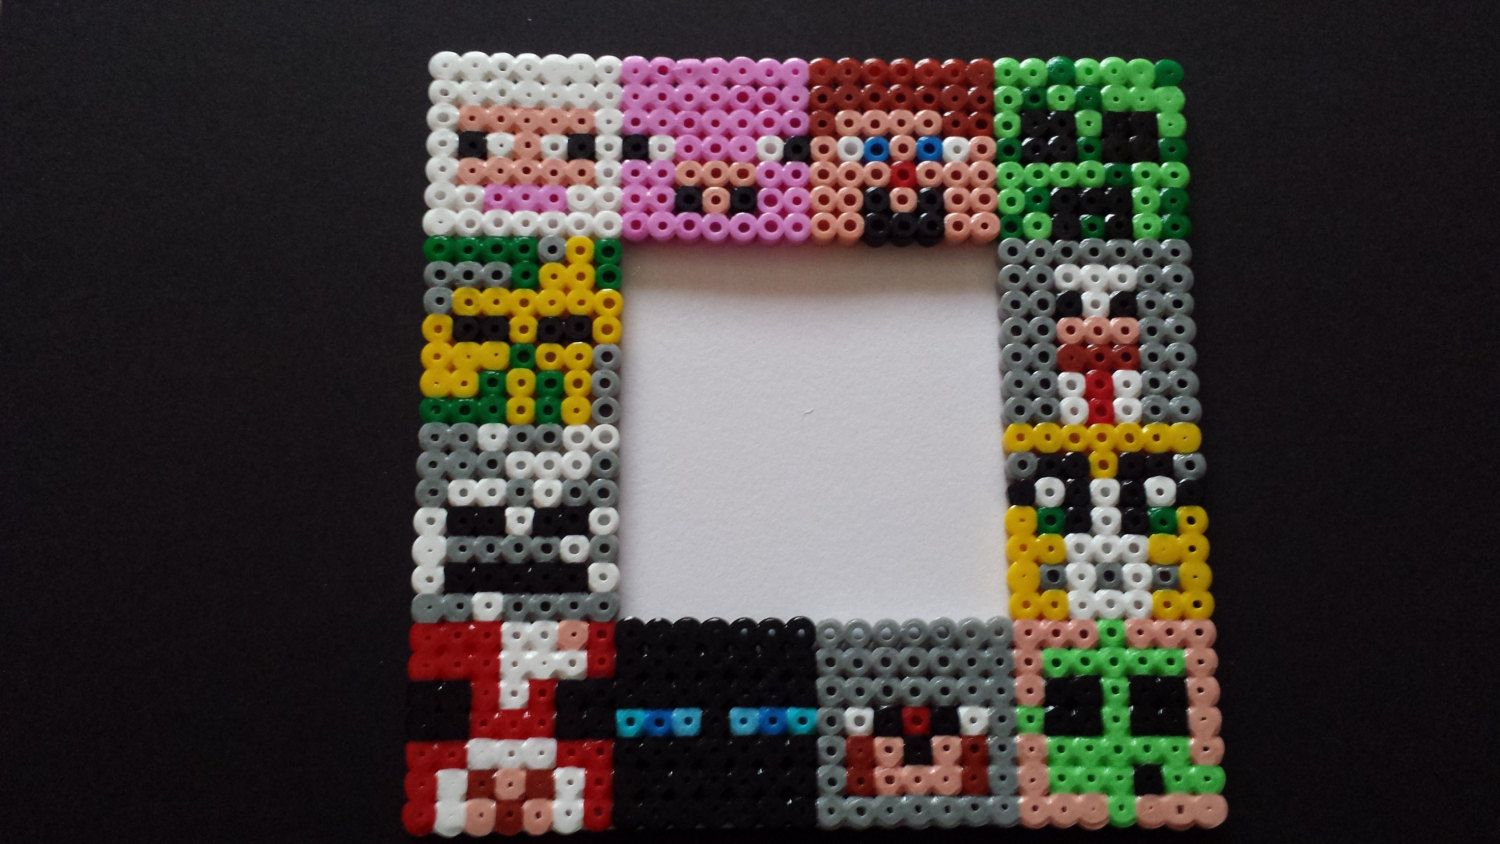 Minecraft character picture frame using Hama beads | Minecraft ...